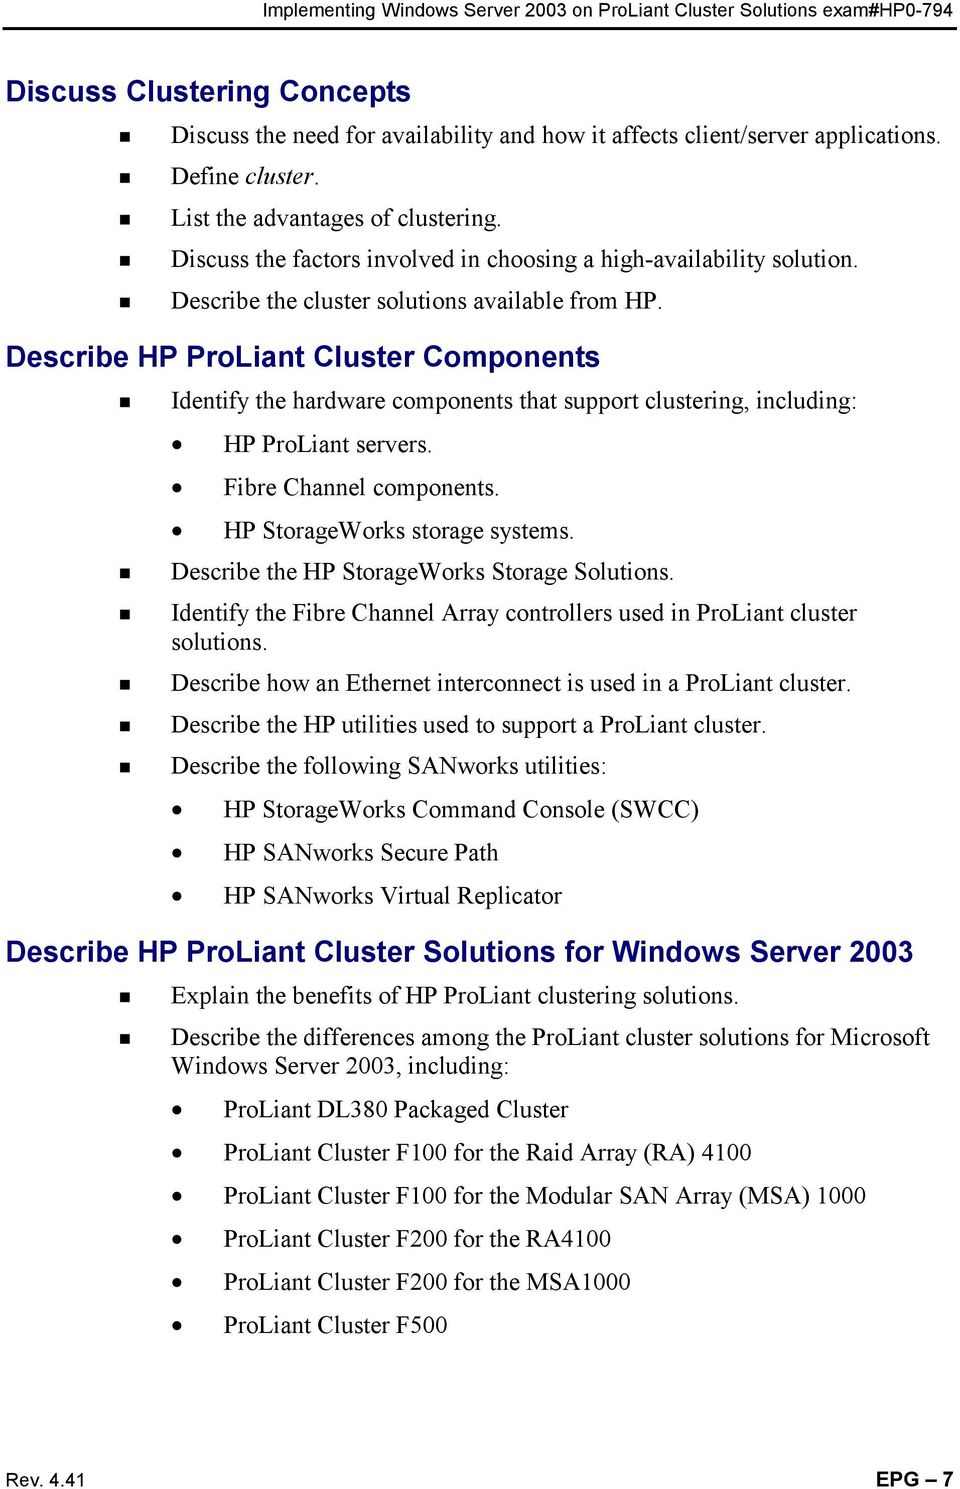 Describe HP ProLiant Cluster Components Identify the hardware components that support clustering, including: HP ProLiant servers. Fibre Channel components. HP StorageWorks storage systems.